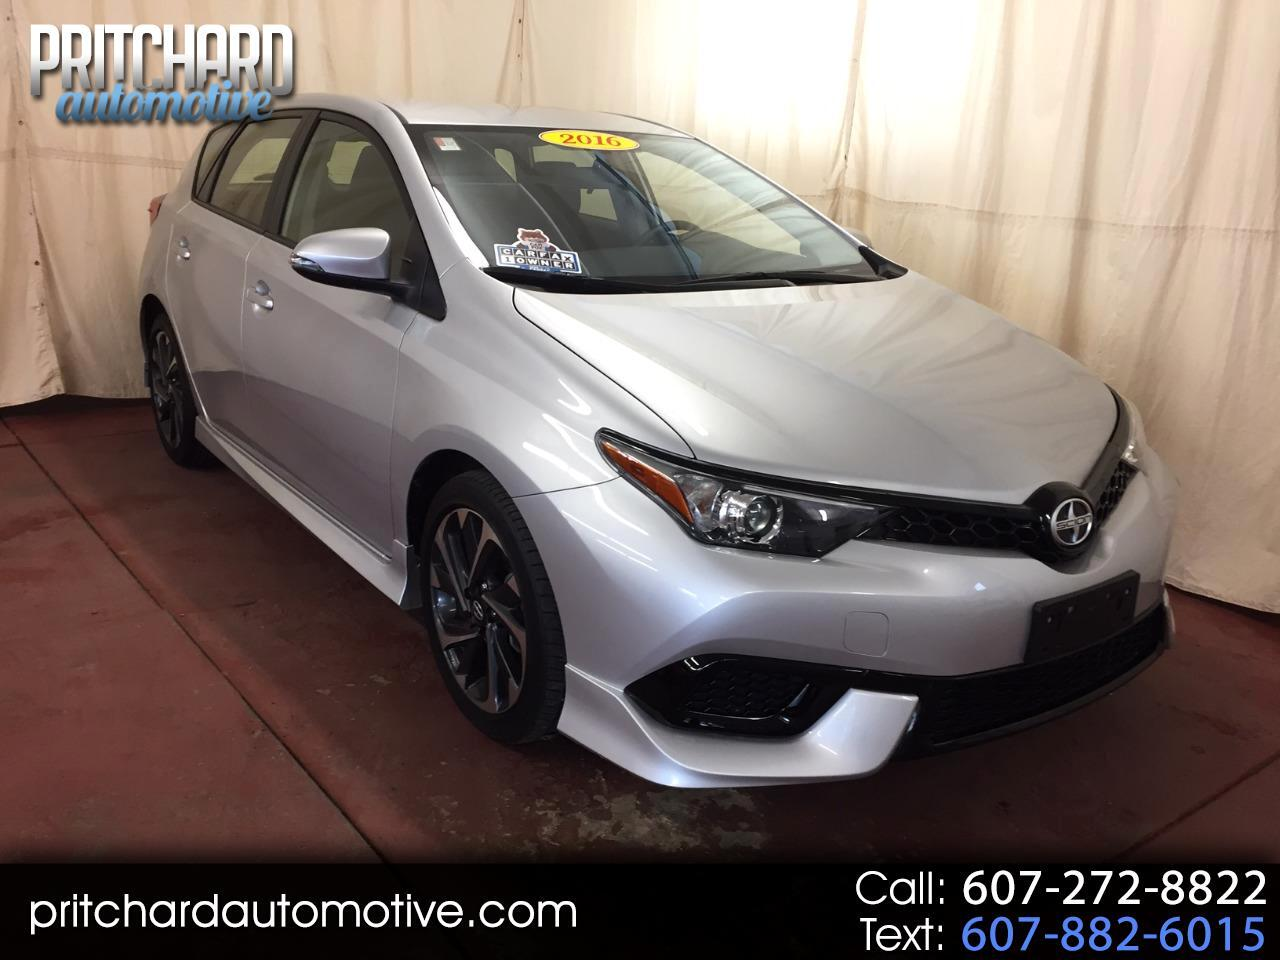 2016 Scion iM 5dr HB Man (Natl)